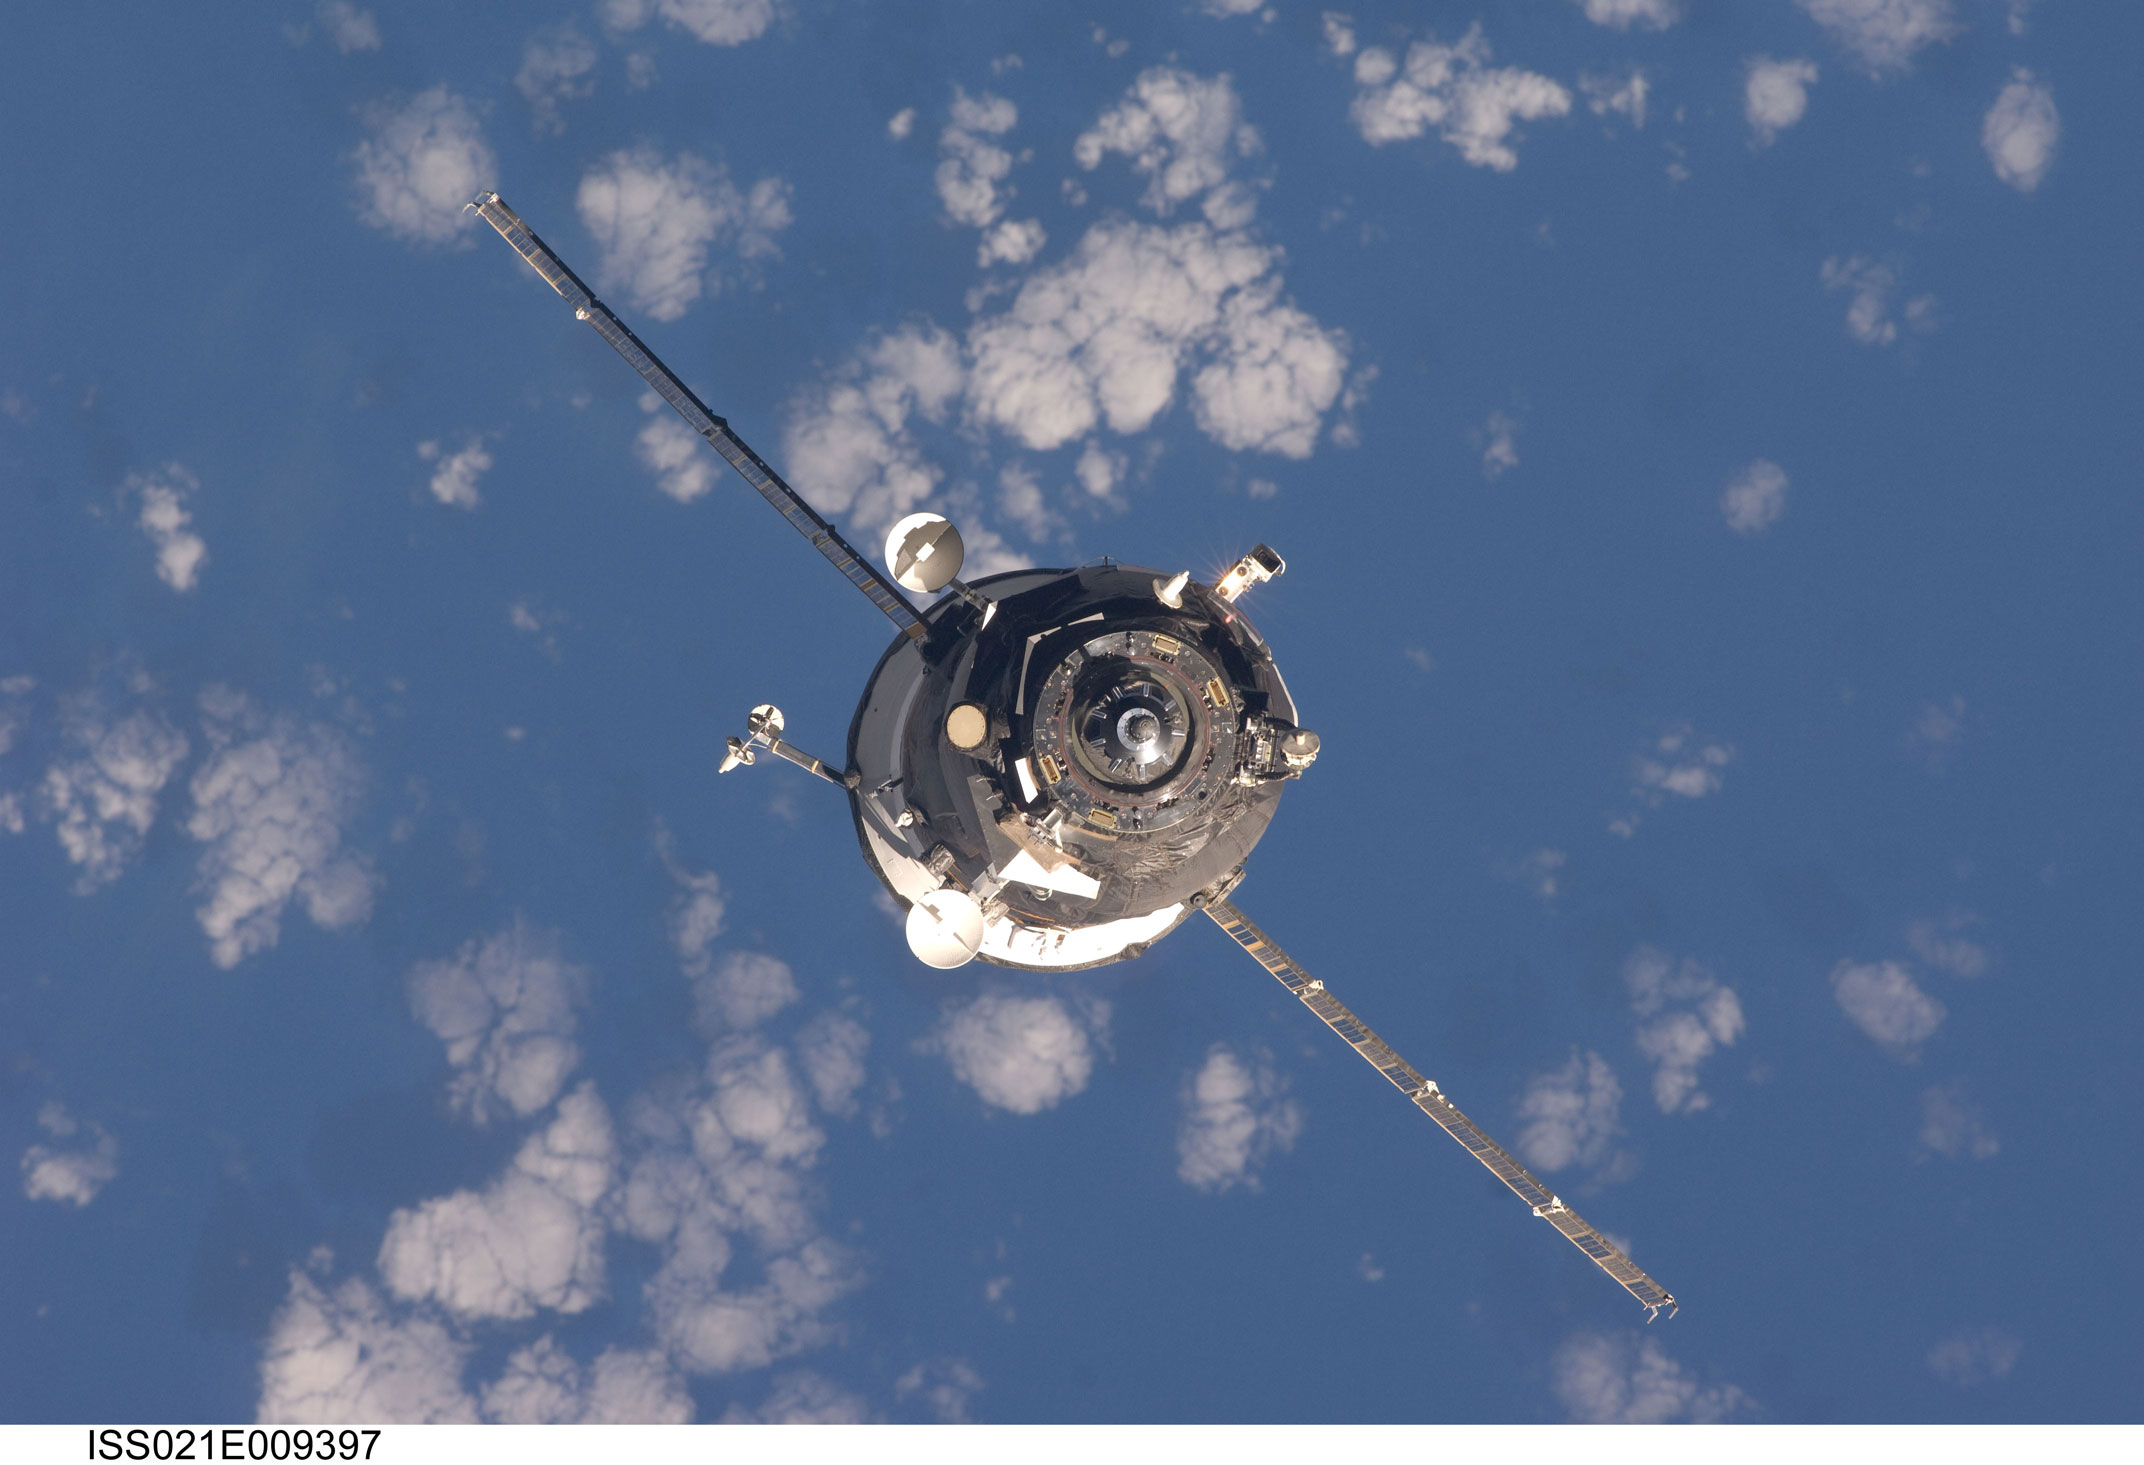 An_unpiloted_Progress_spacecraft_approaches_the_ISS_for_docking